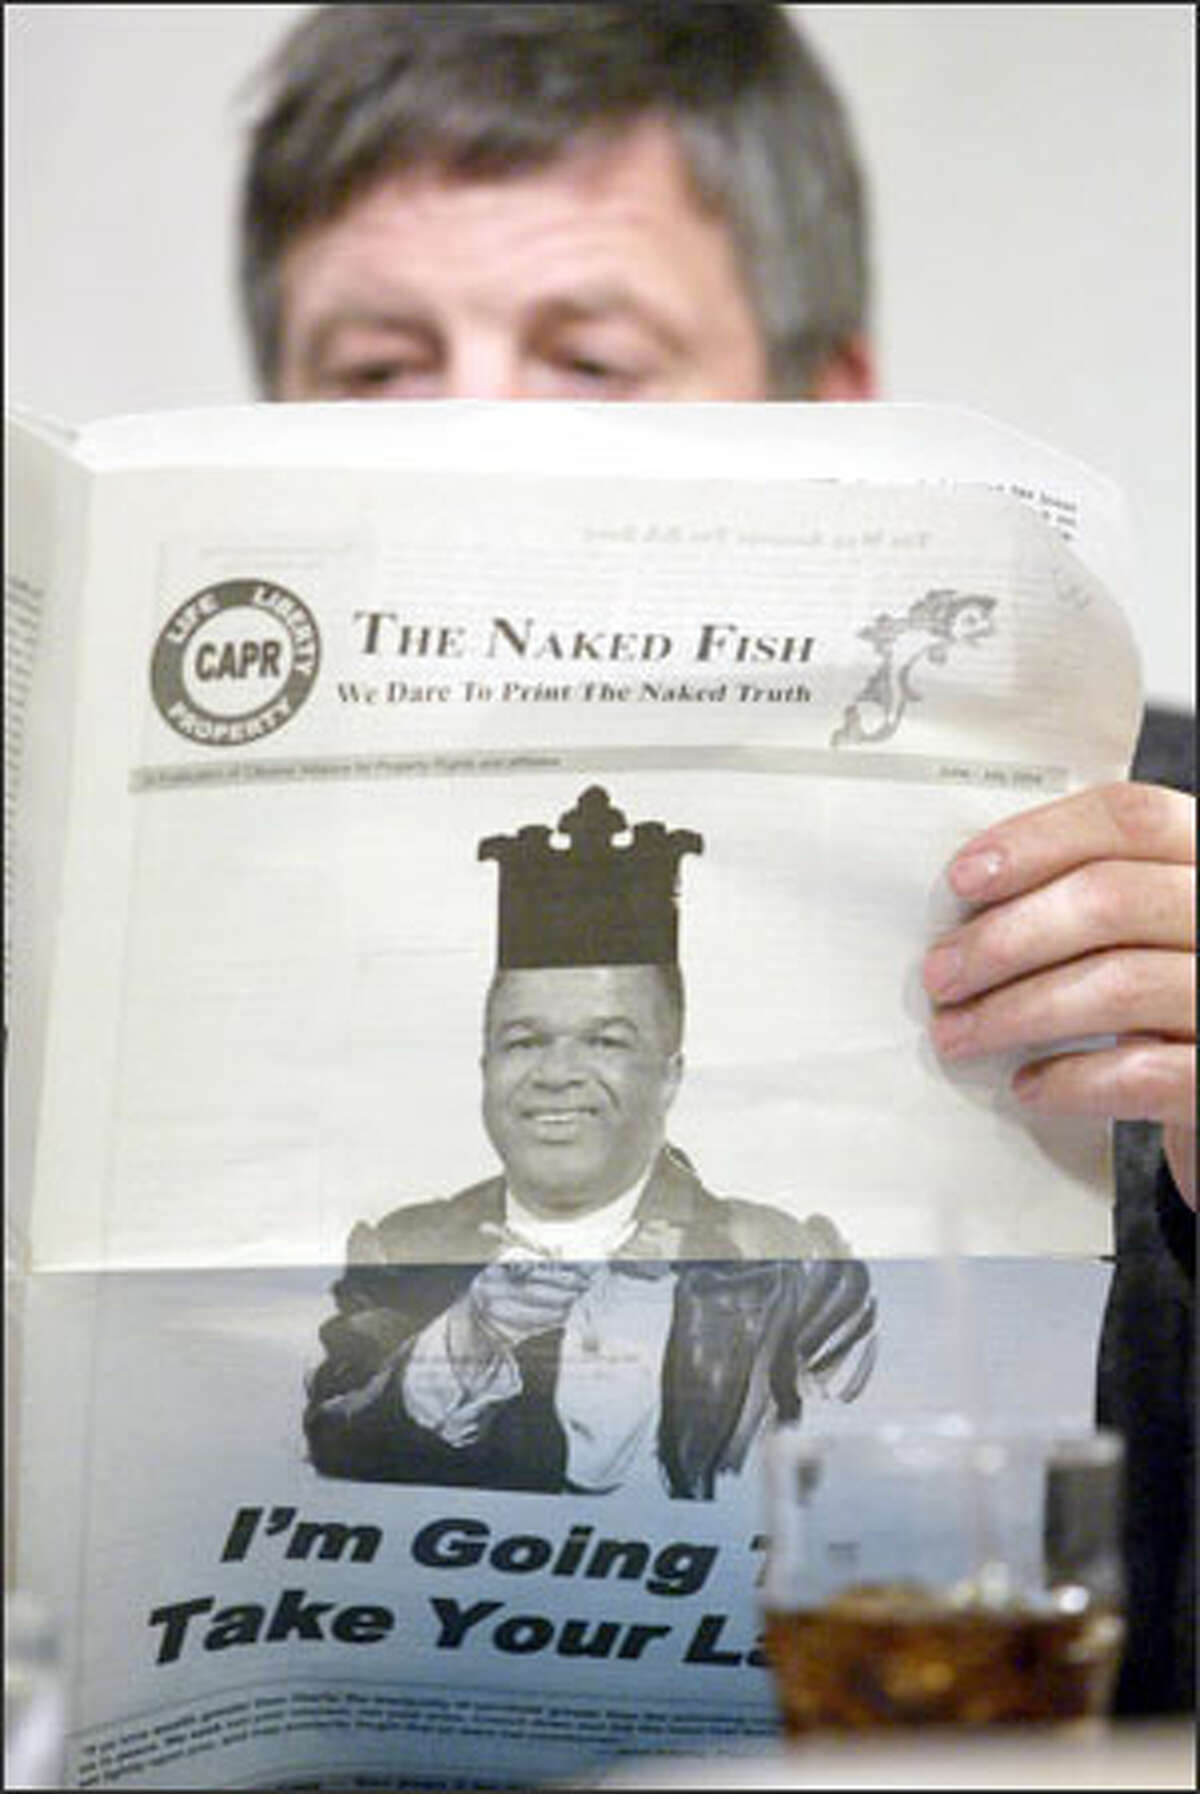 Roy Ruffino of Lacey reads the Citizens Alliance for Property Rights newsletter featuring a reworked photo depicting King County Executive Ron Sims as